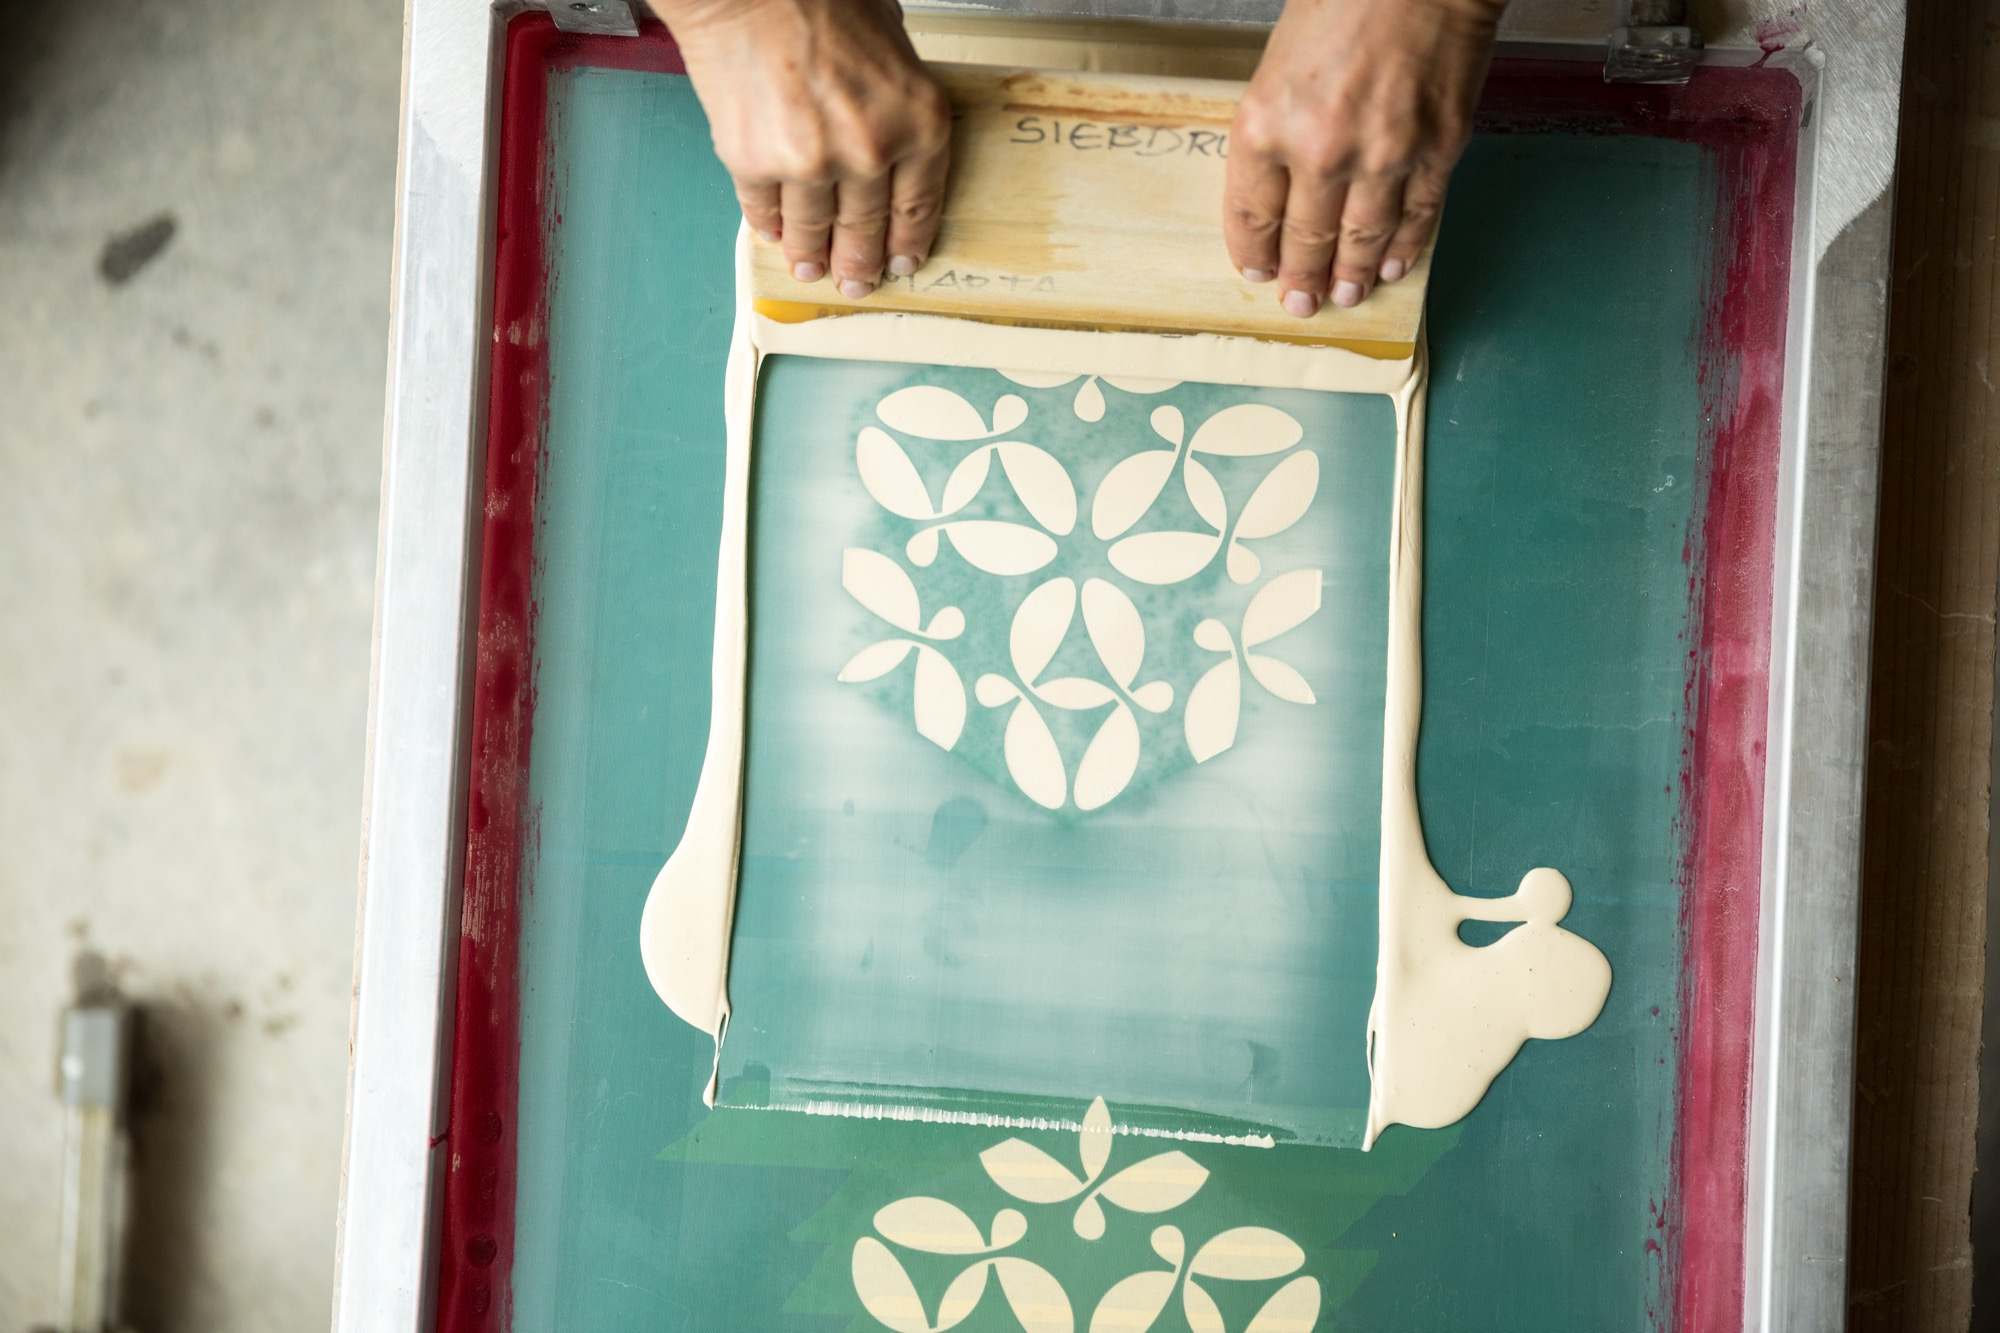 Sebastian's designs are applied to his mother's tiles through silk screening